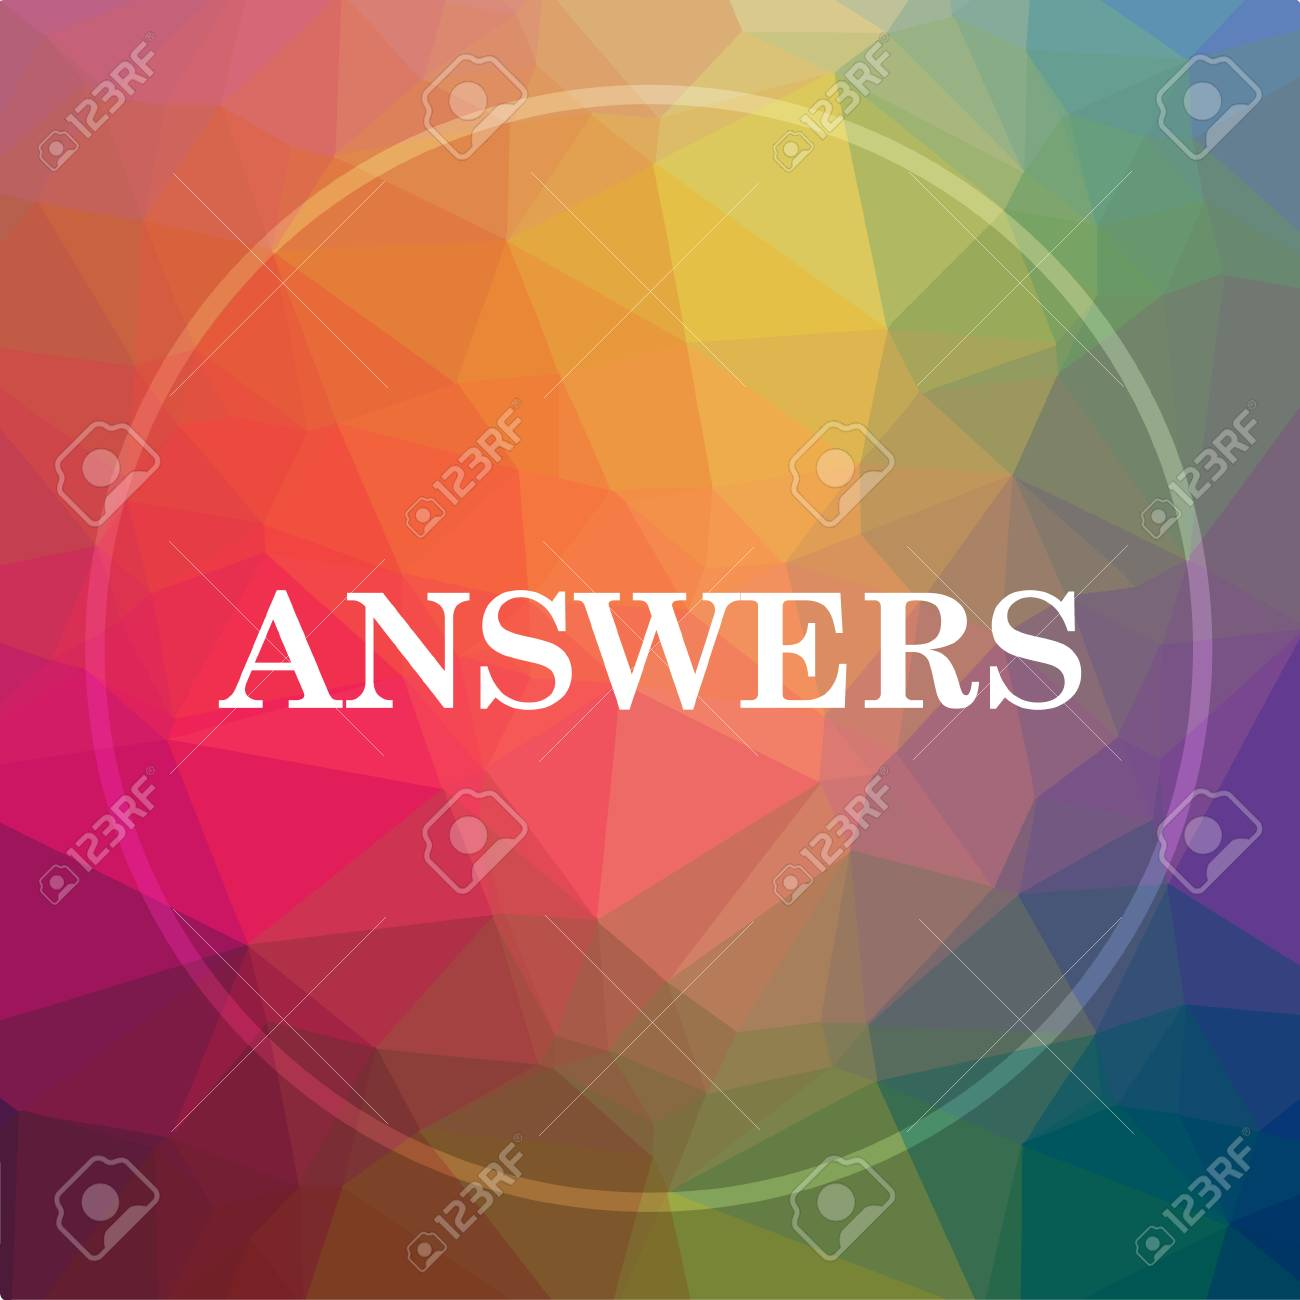 Answers icon  Answers website button on low poly background